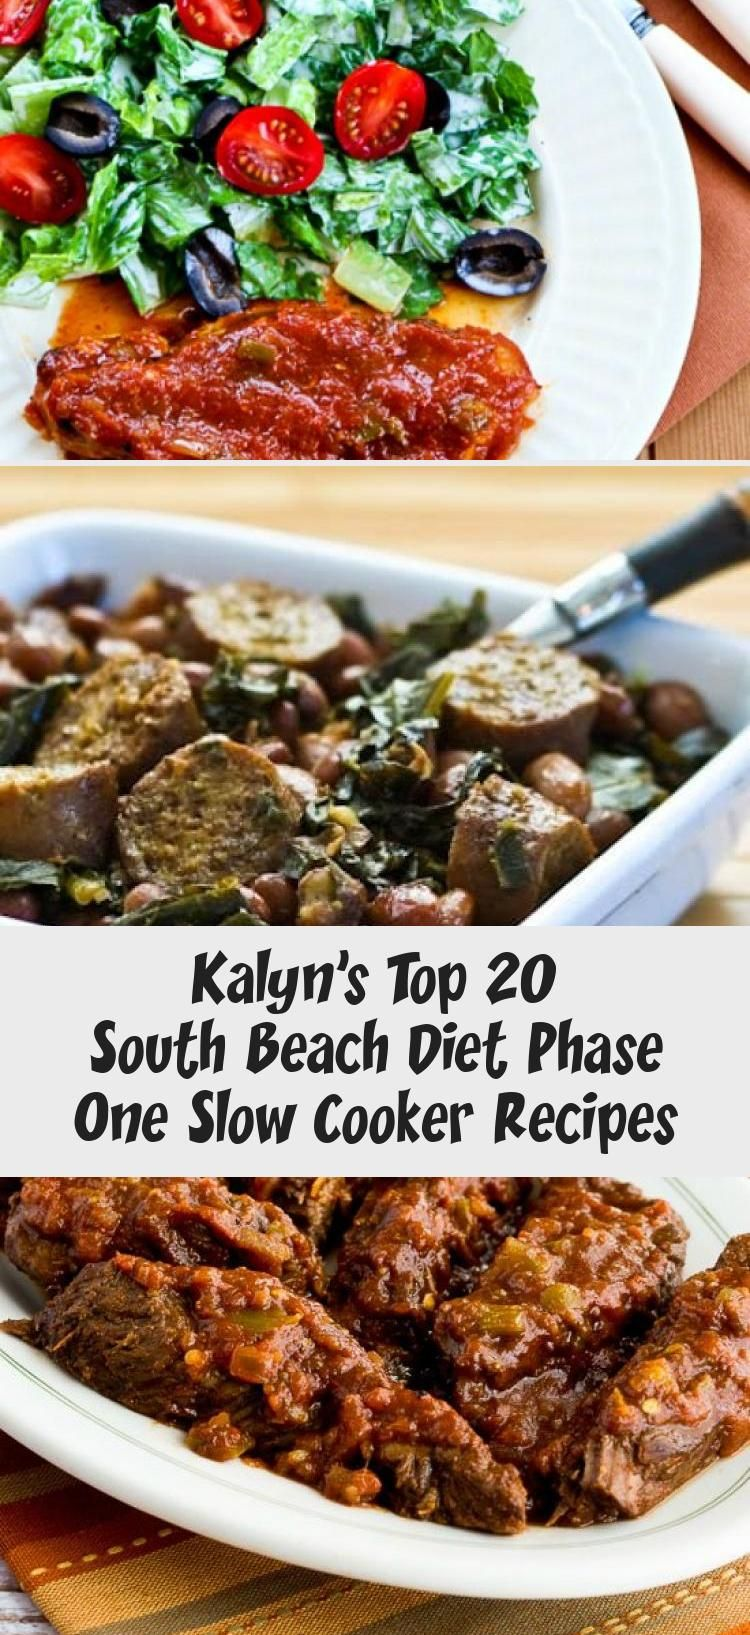 south beach diet slow cooker recipes